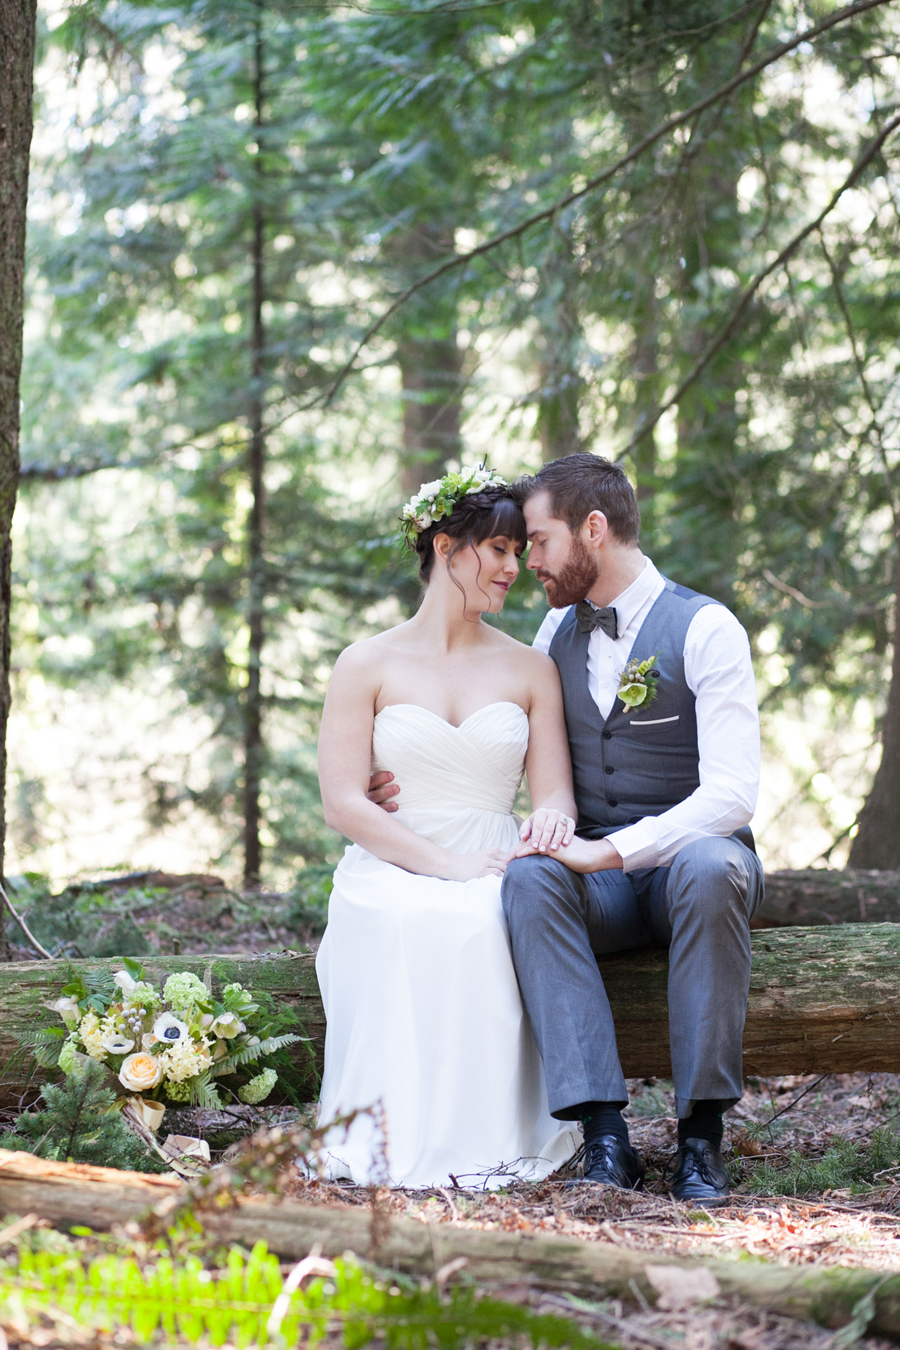 017-pacific-northwest-woodland-bridal-styled-session-lynden-washington-katheryn-moran-photography.jpg